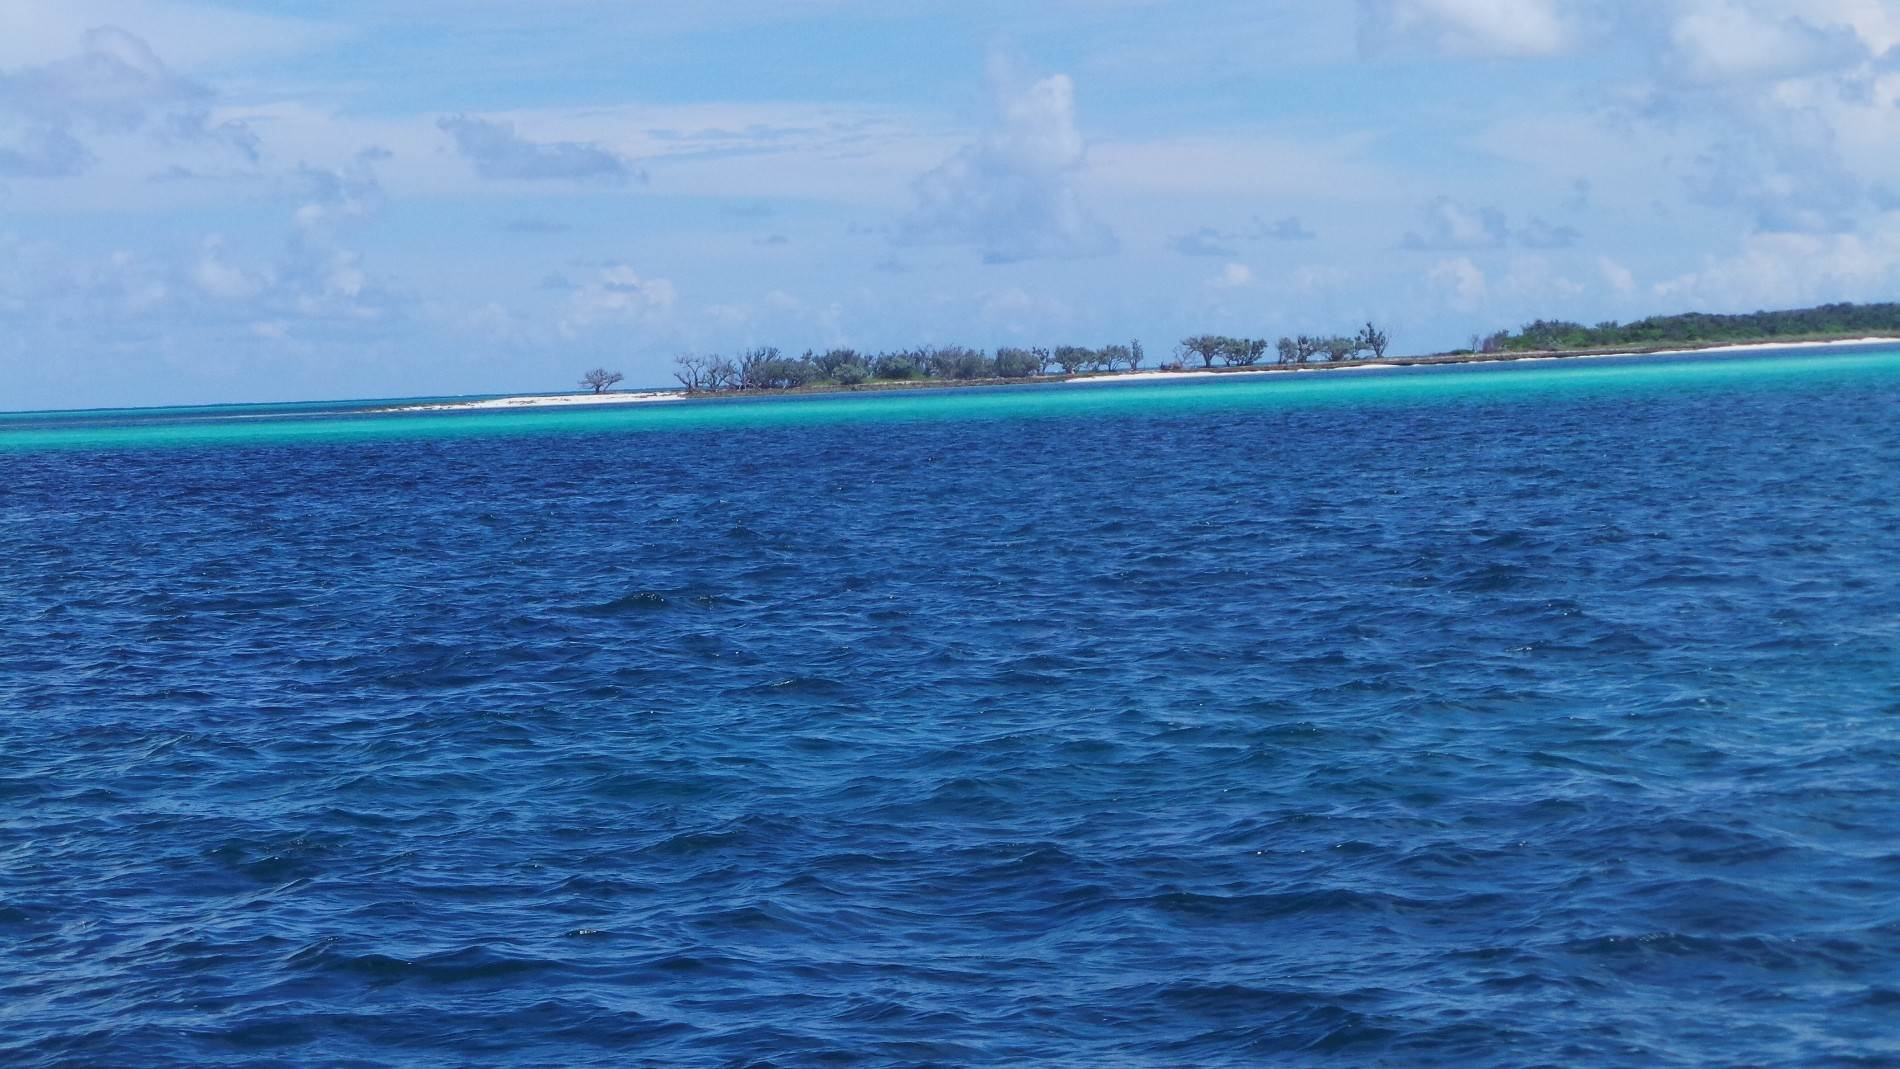 14. Private Islands por un Venta en Large Private Island in Abaco with approved development Plans - MLS 42074 Abaco, Bahamas